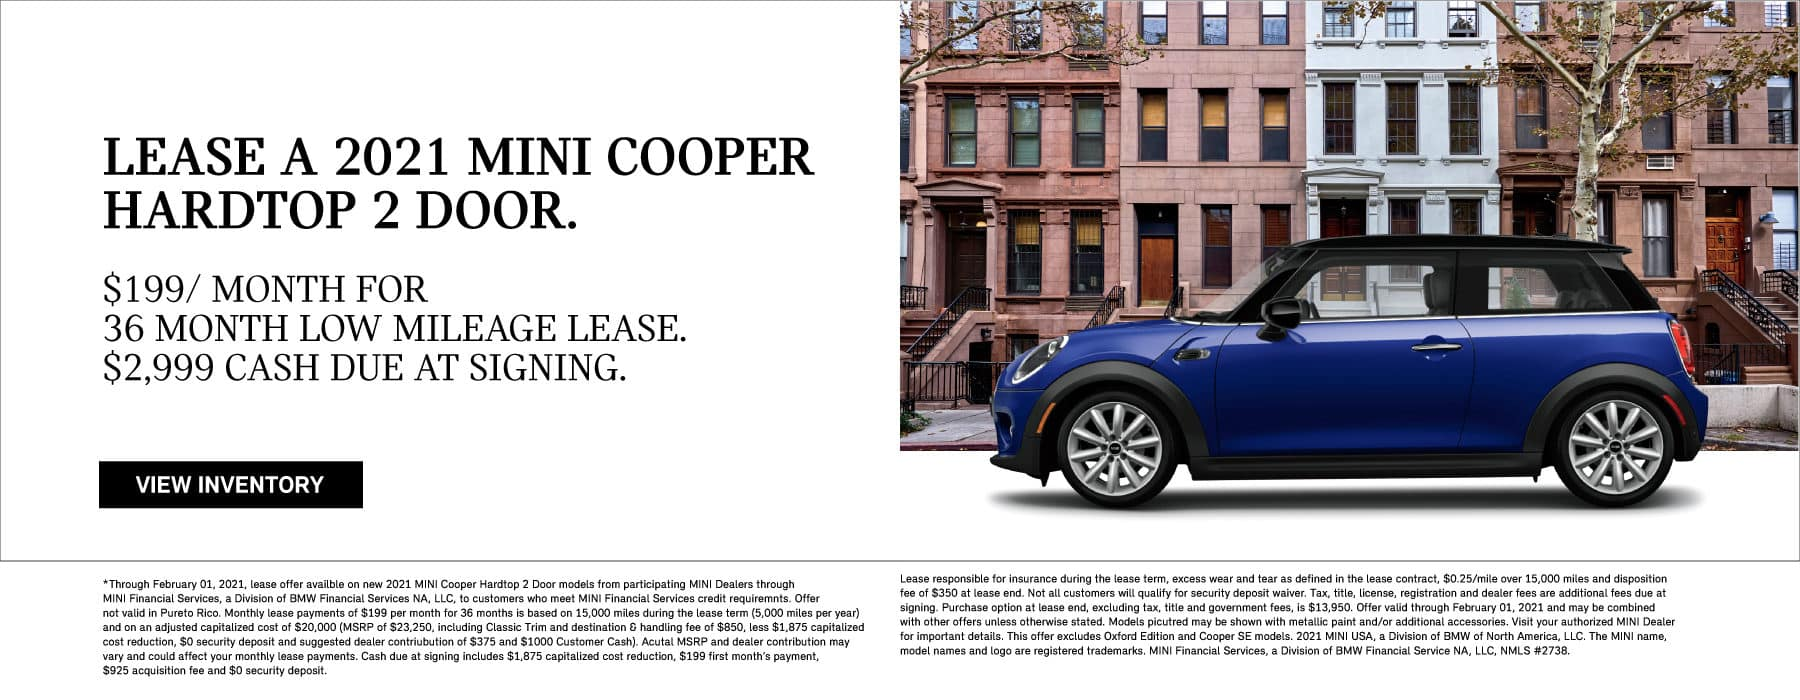 LEASE A 2021 MINI COOPER HARDTOP 2 DOOR FOR $199 A MONTH FOR 36 MONTH LOW MILEAGE LEASE. $2,999 CASH DUE AT SIGNING.